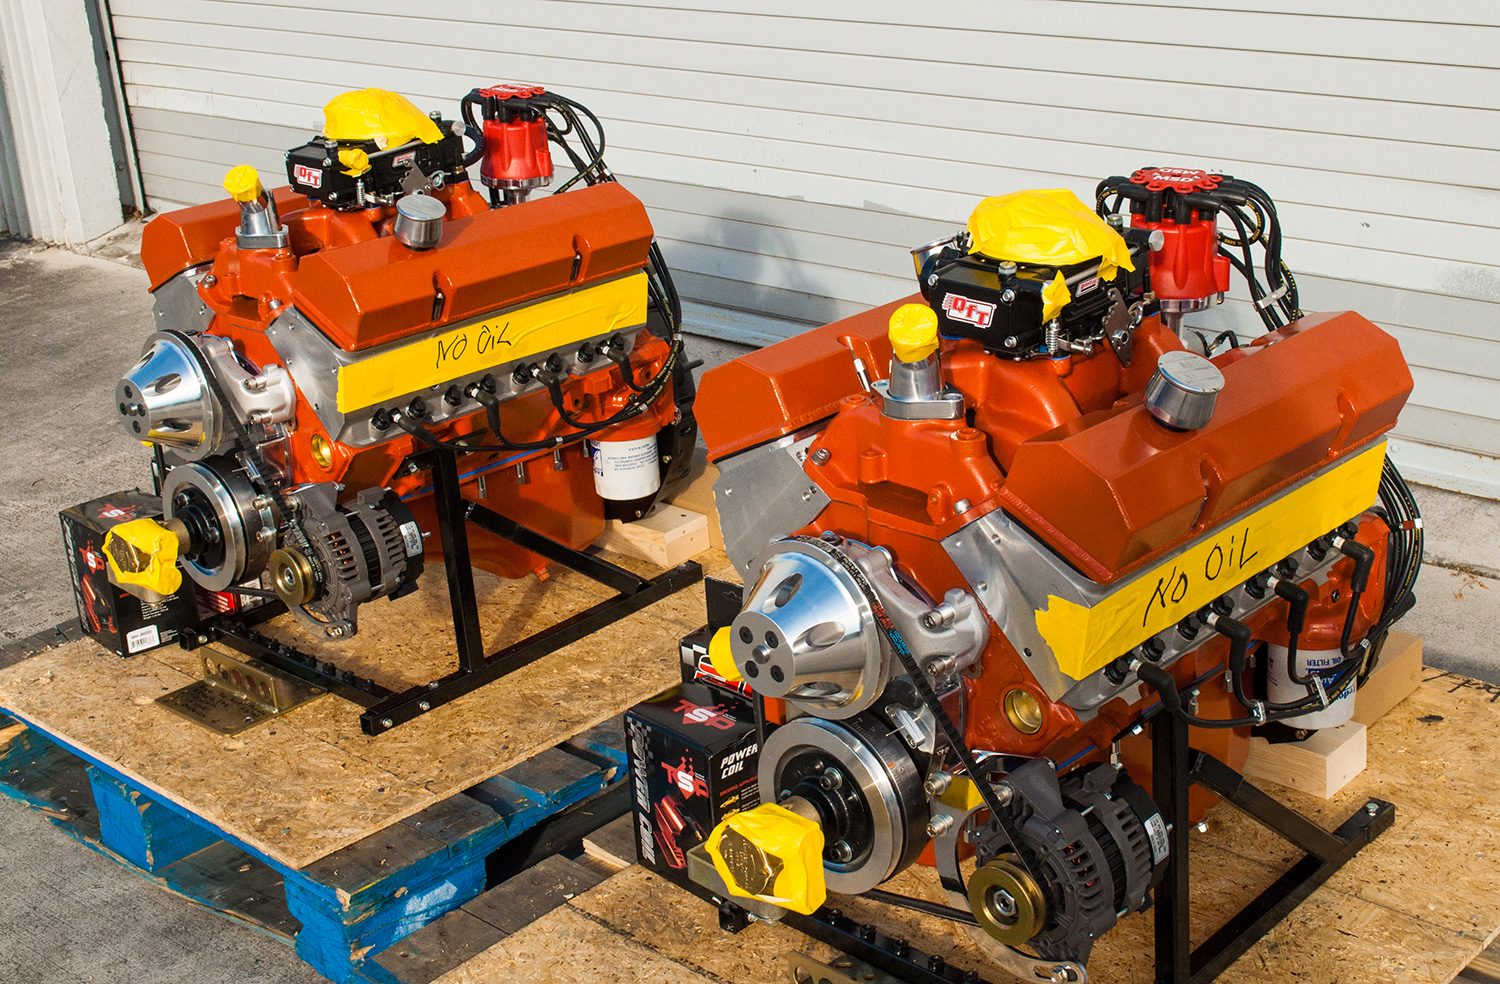 Medusa Engines The Most Powerful Marine Inboard Engines